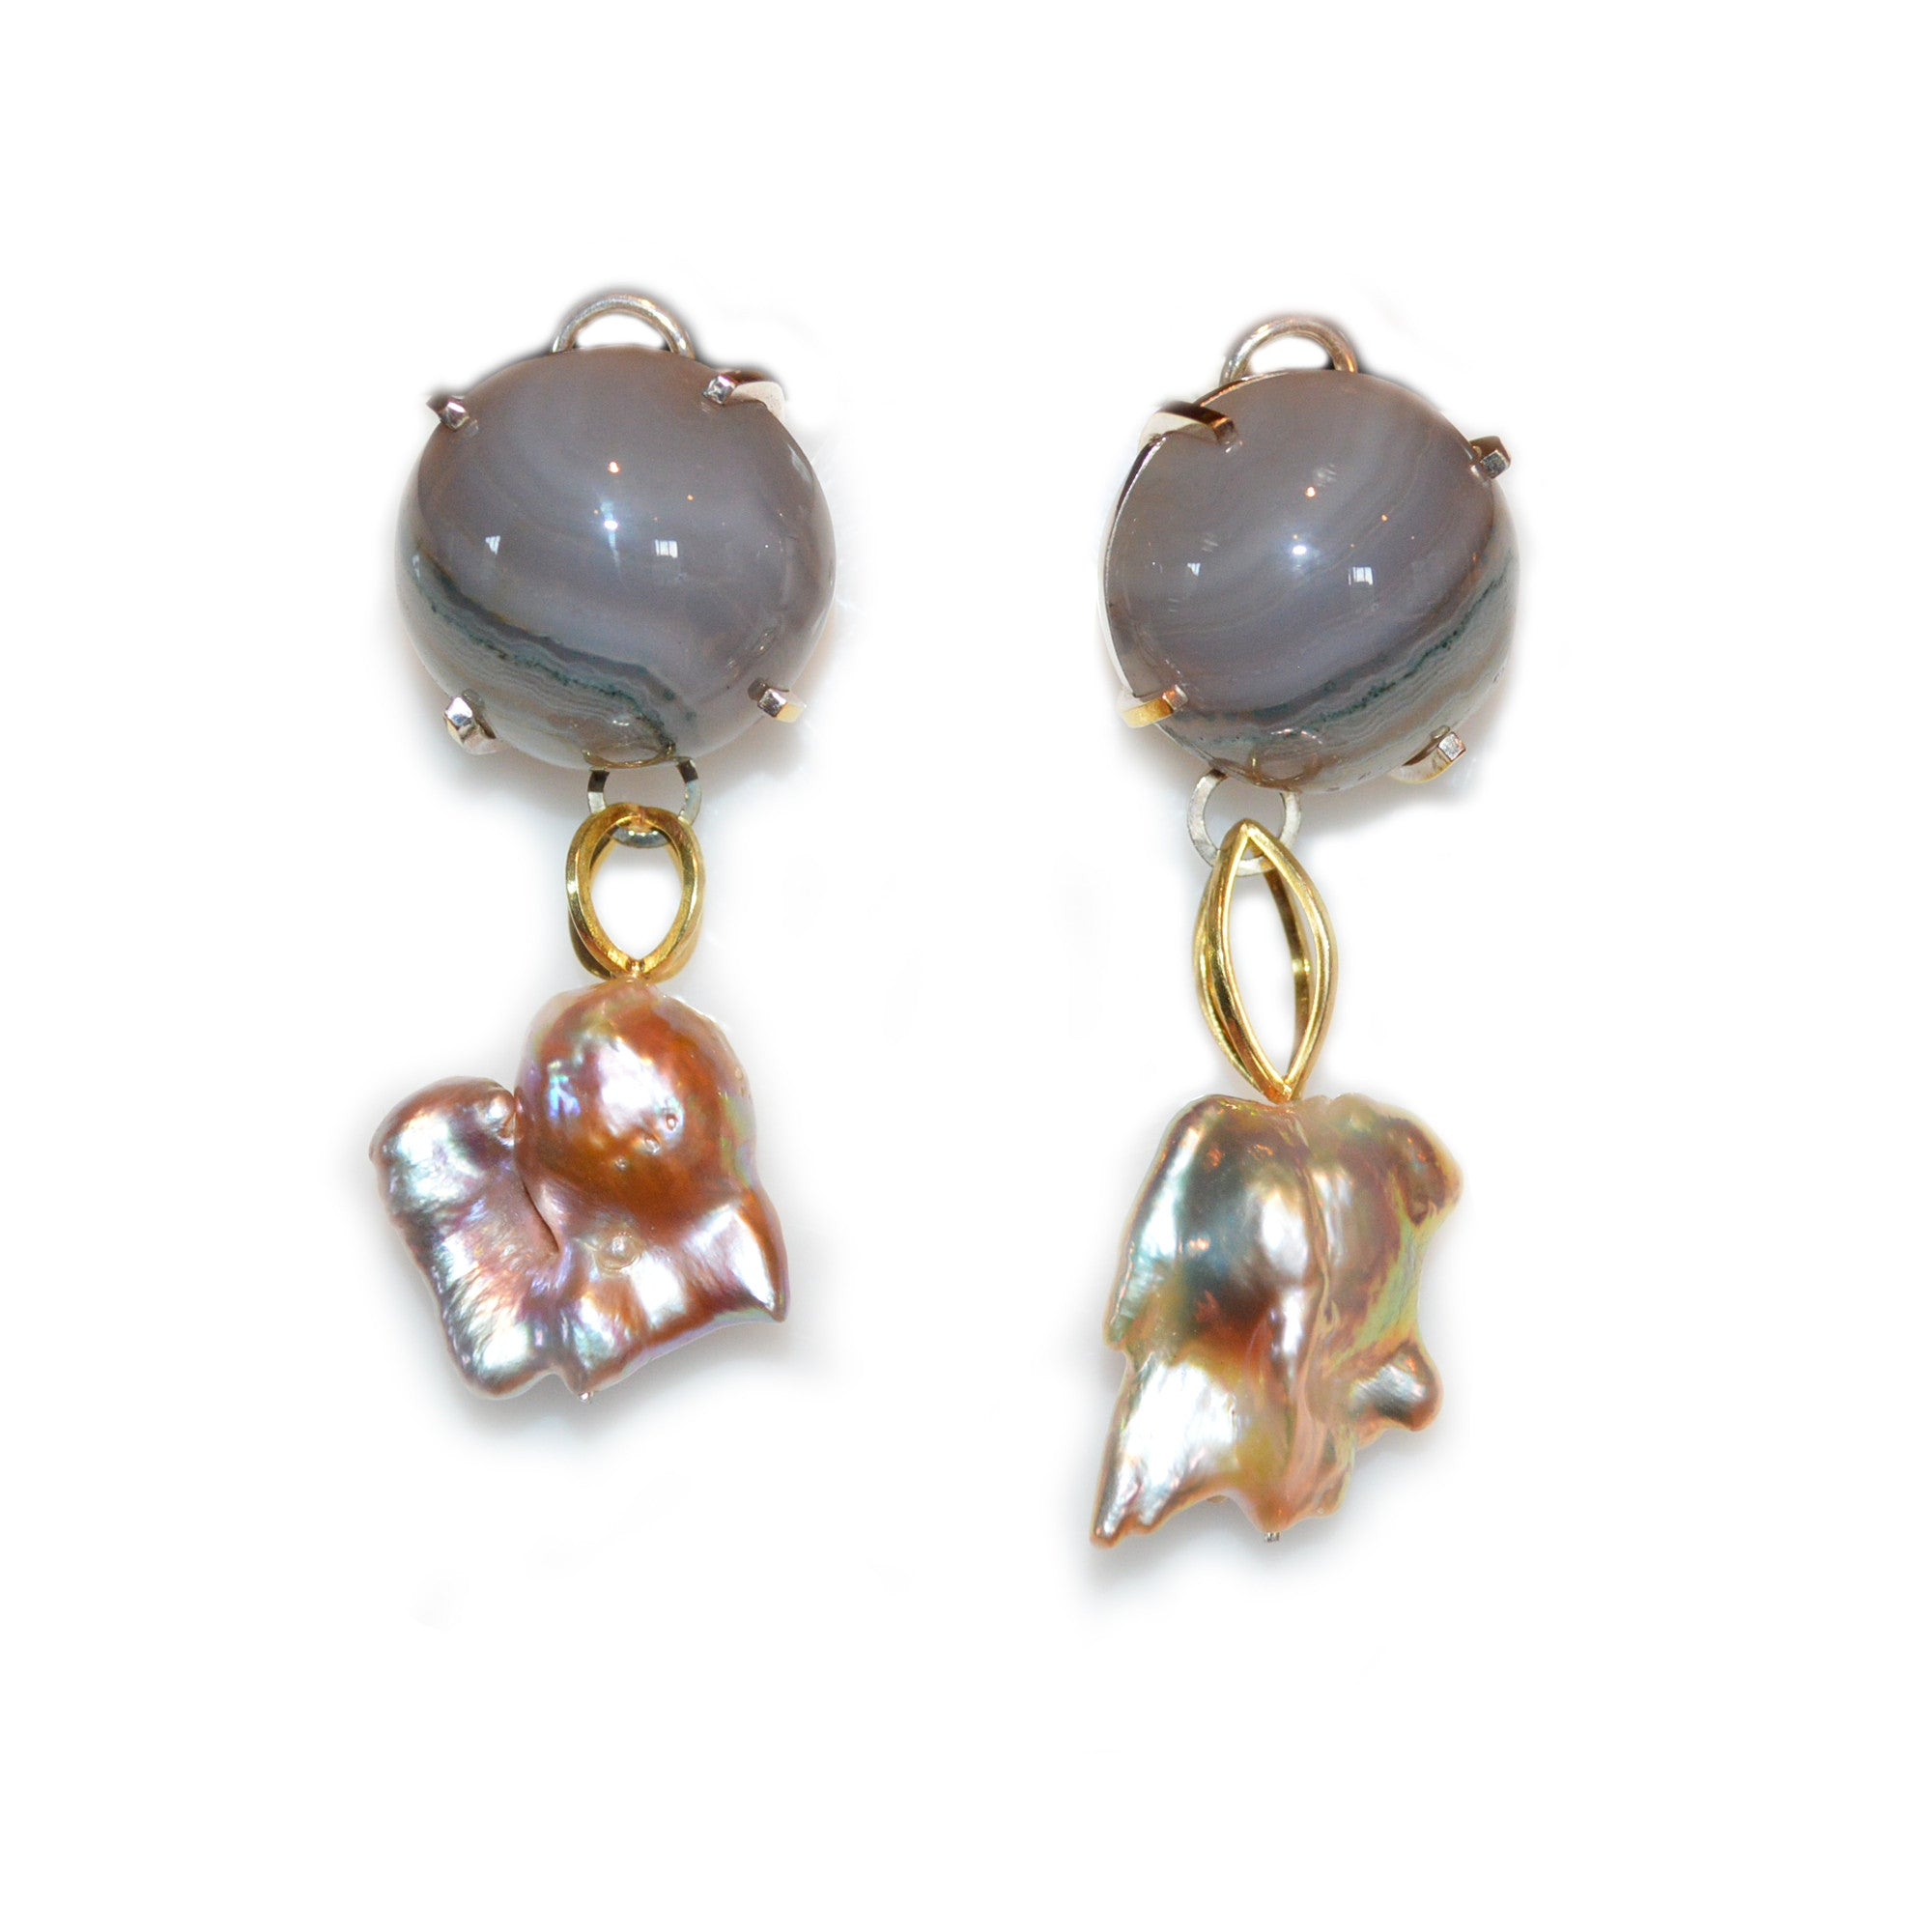 Phoenix Pearl and Agate Earrings